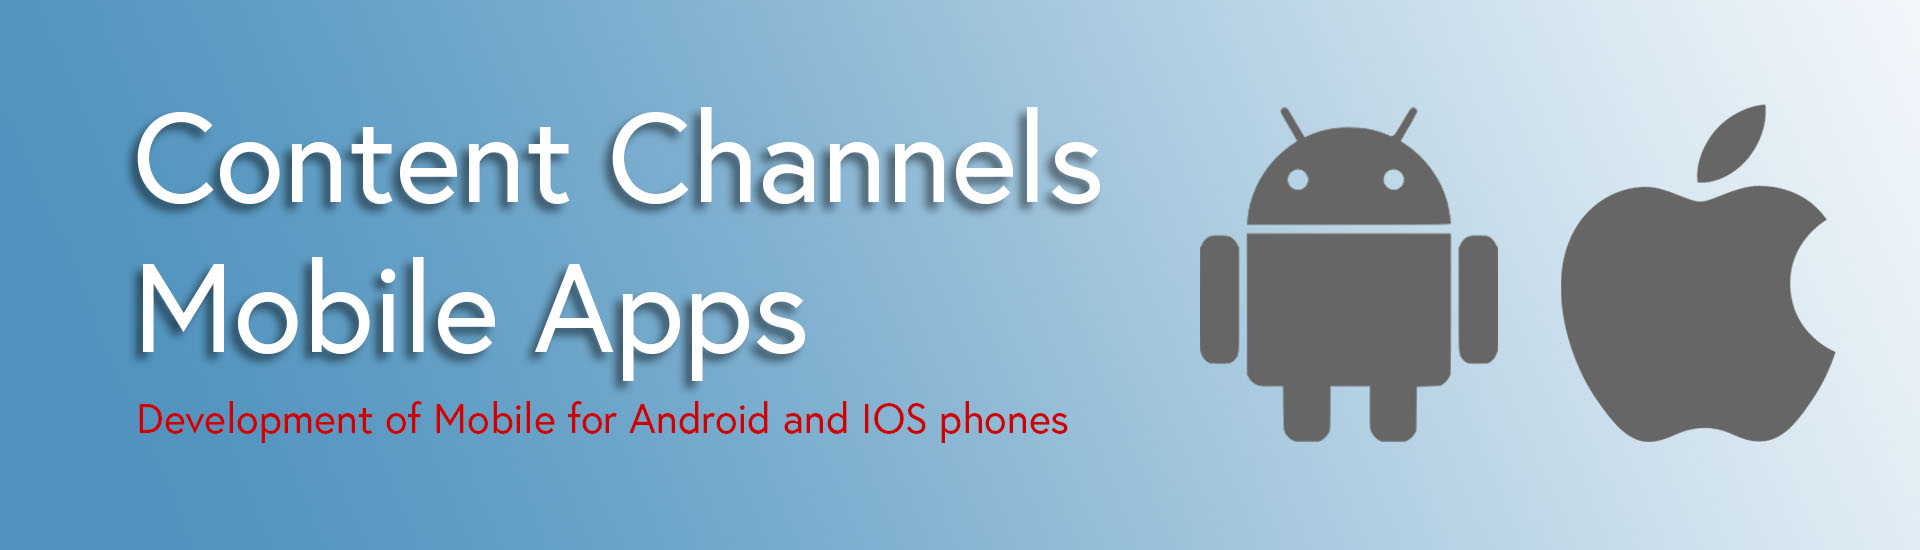 Content Channels - Mobile Apps